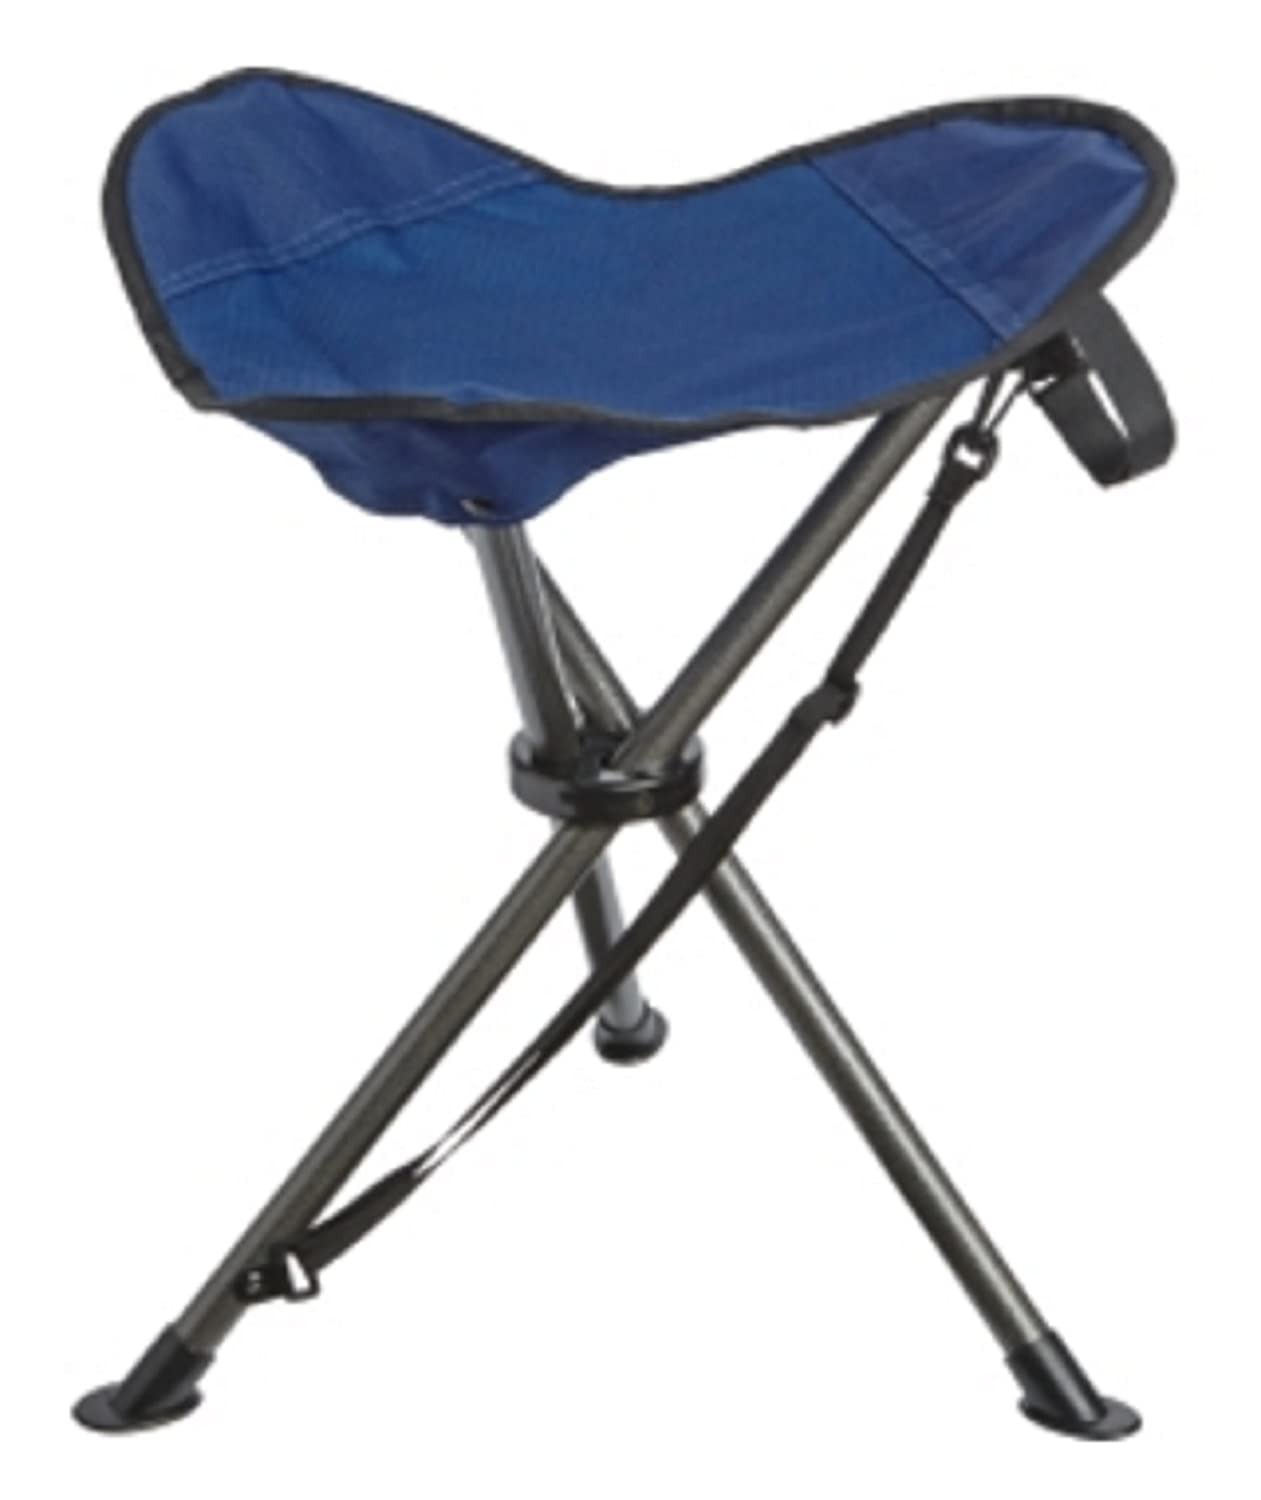 or Back Yard Sporting Events Portable for Camping Quest Oversized Folding Stool in Several Colors